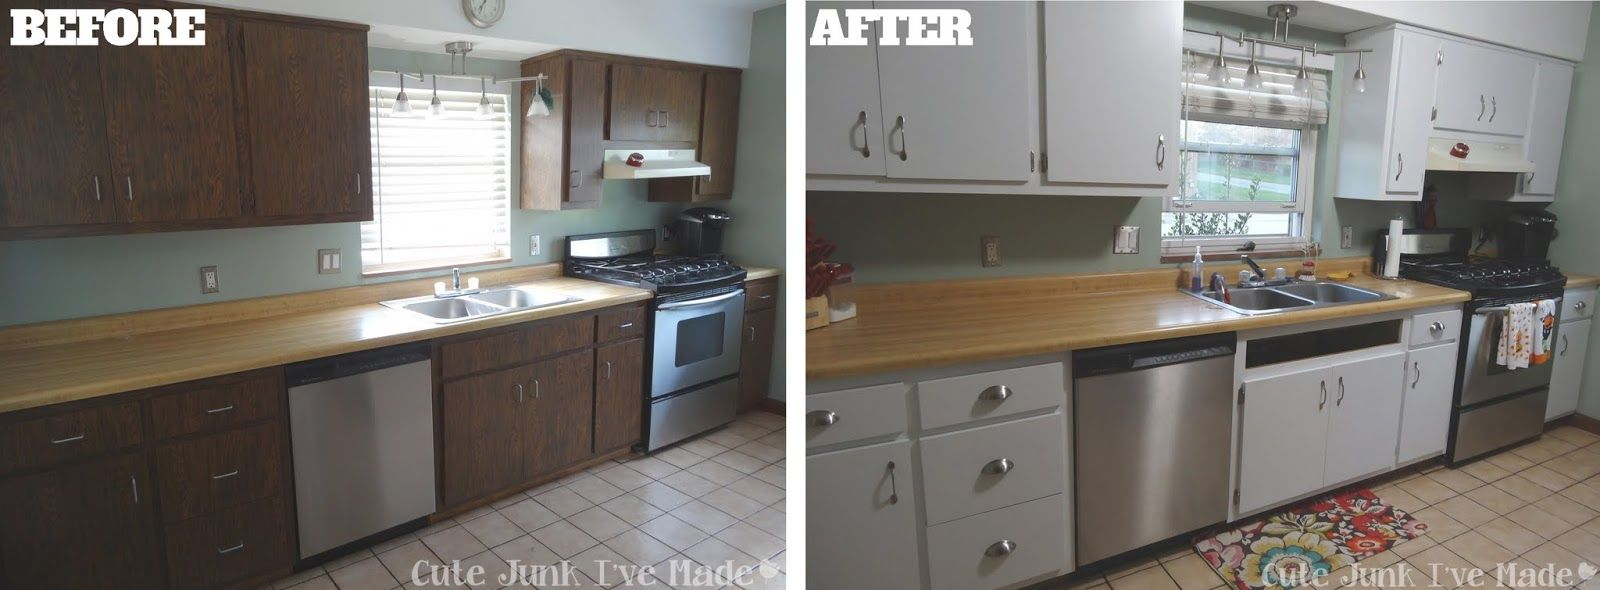 How To Paint Veneer Kitchen Cabinets How To Paint Laminate Cabinets  Before & After Use Old Kitchen